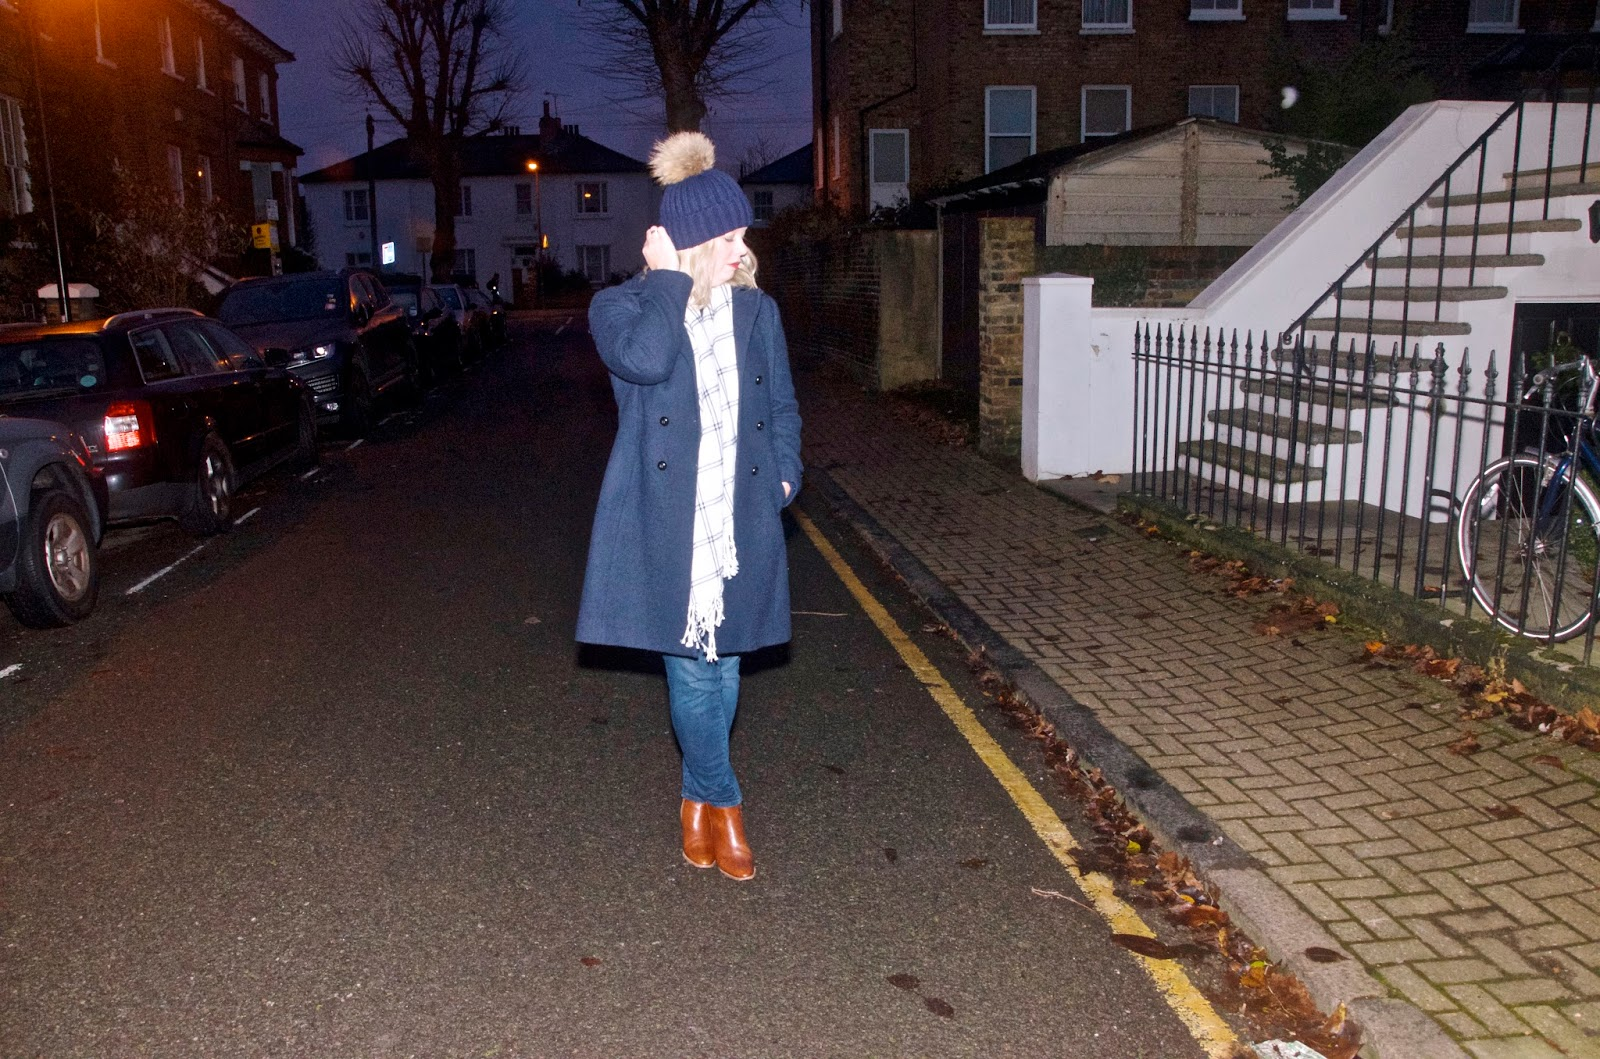 Fur beanie, white scarf, navy coat, brown boots, cobblestones and bicycle